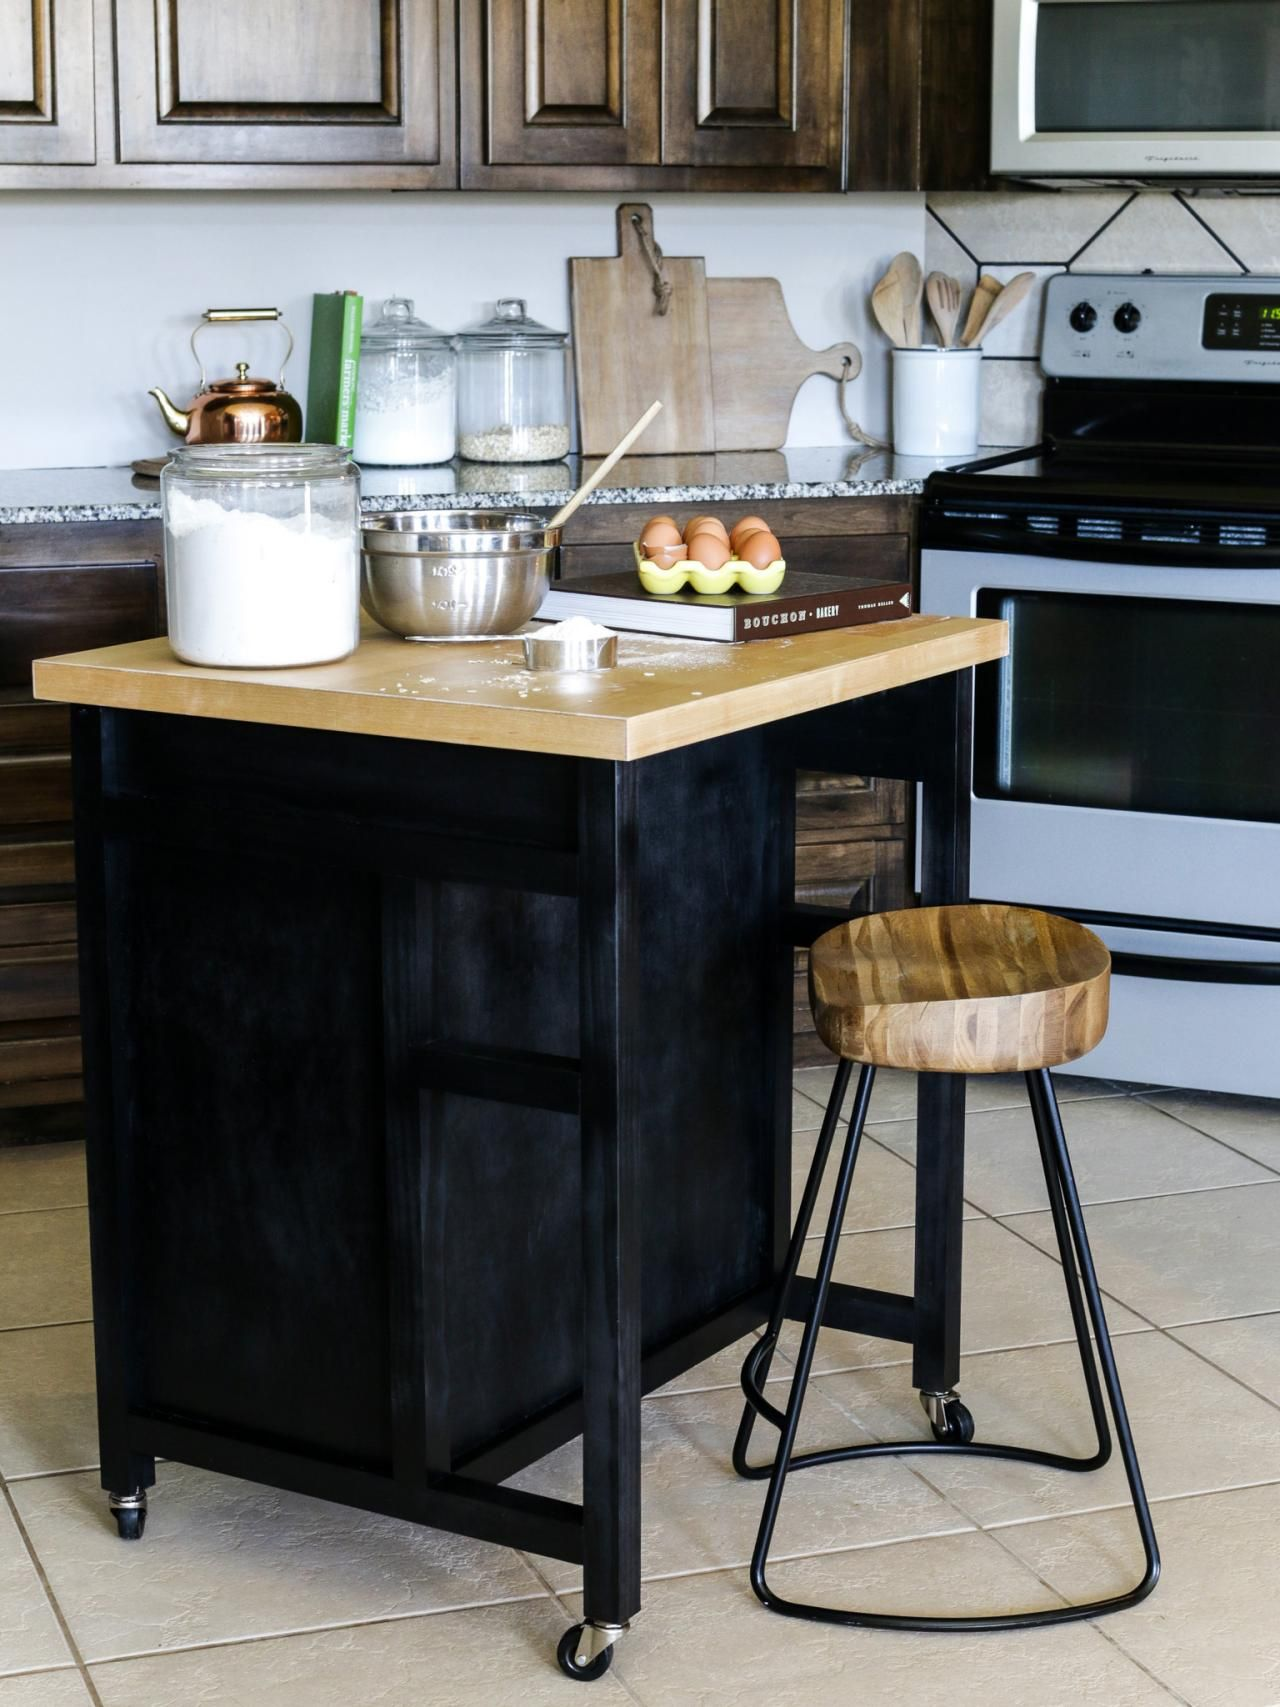 How to Build a DIY Kitchen Island on Wheels Kitchen